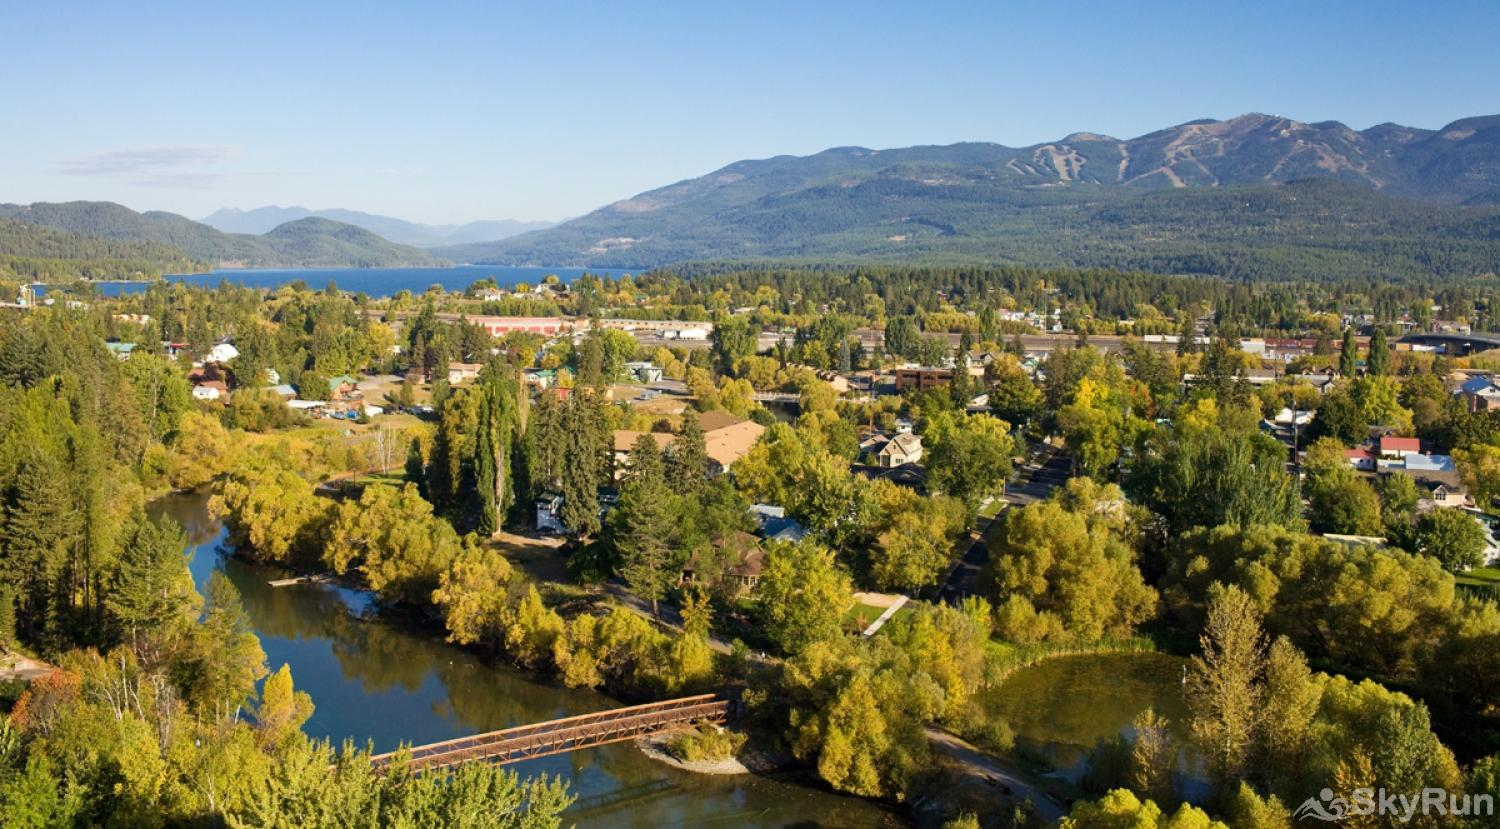 Whitefish River Inn Have access to the mountain, Glacier National Park, downtown Whitefish, the river and Whitefish Lake.